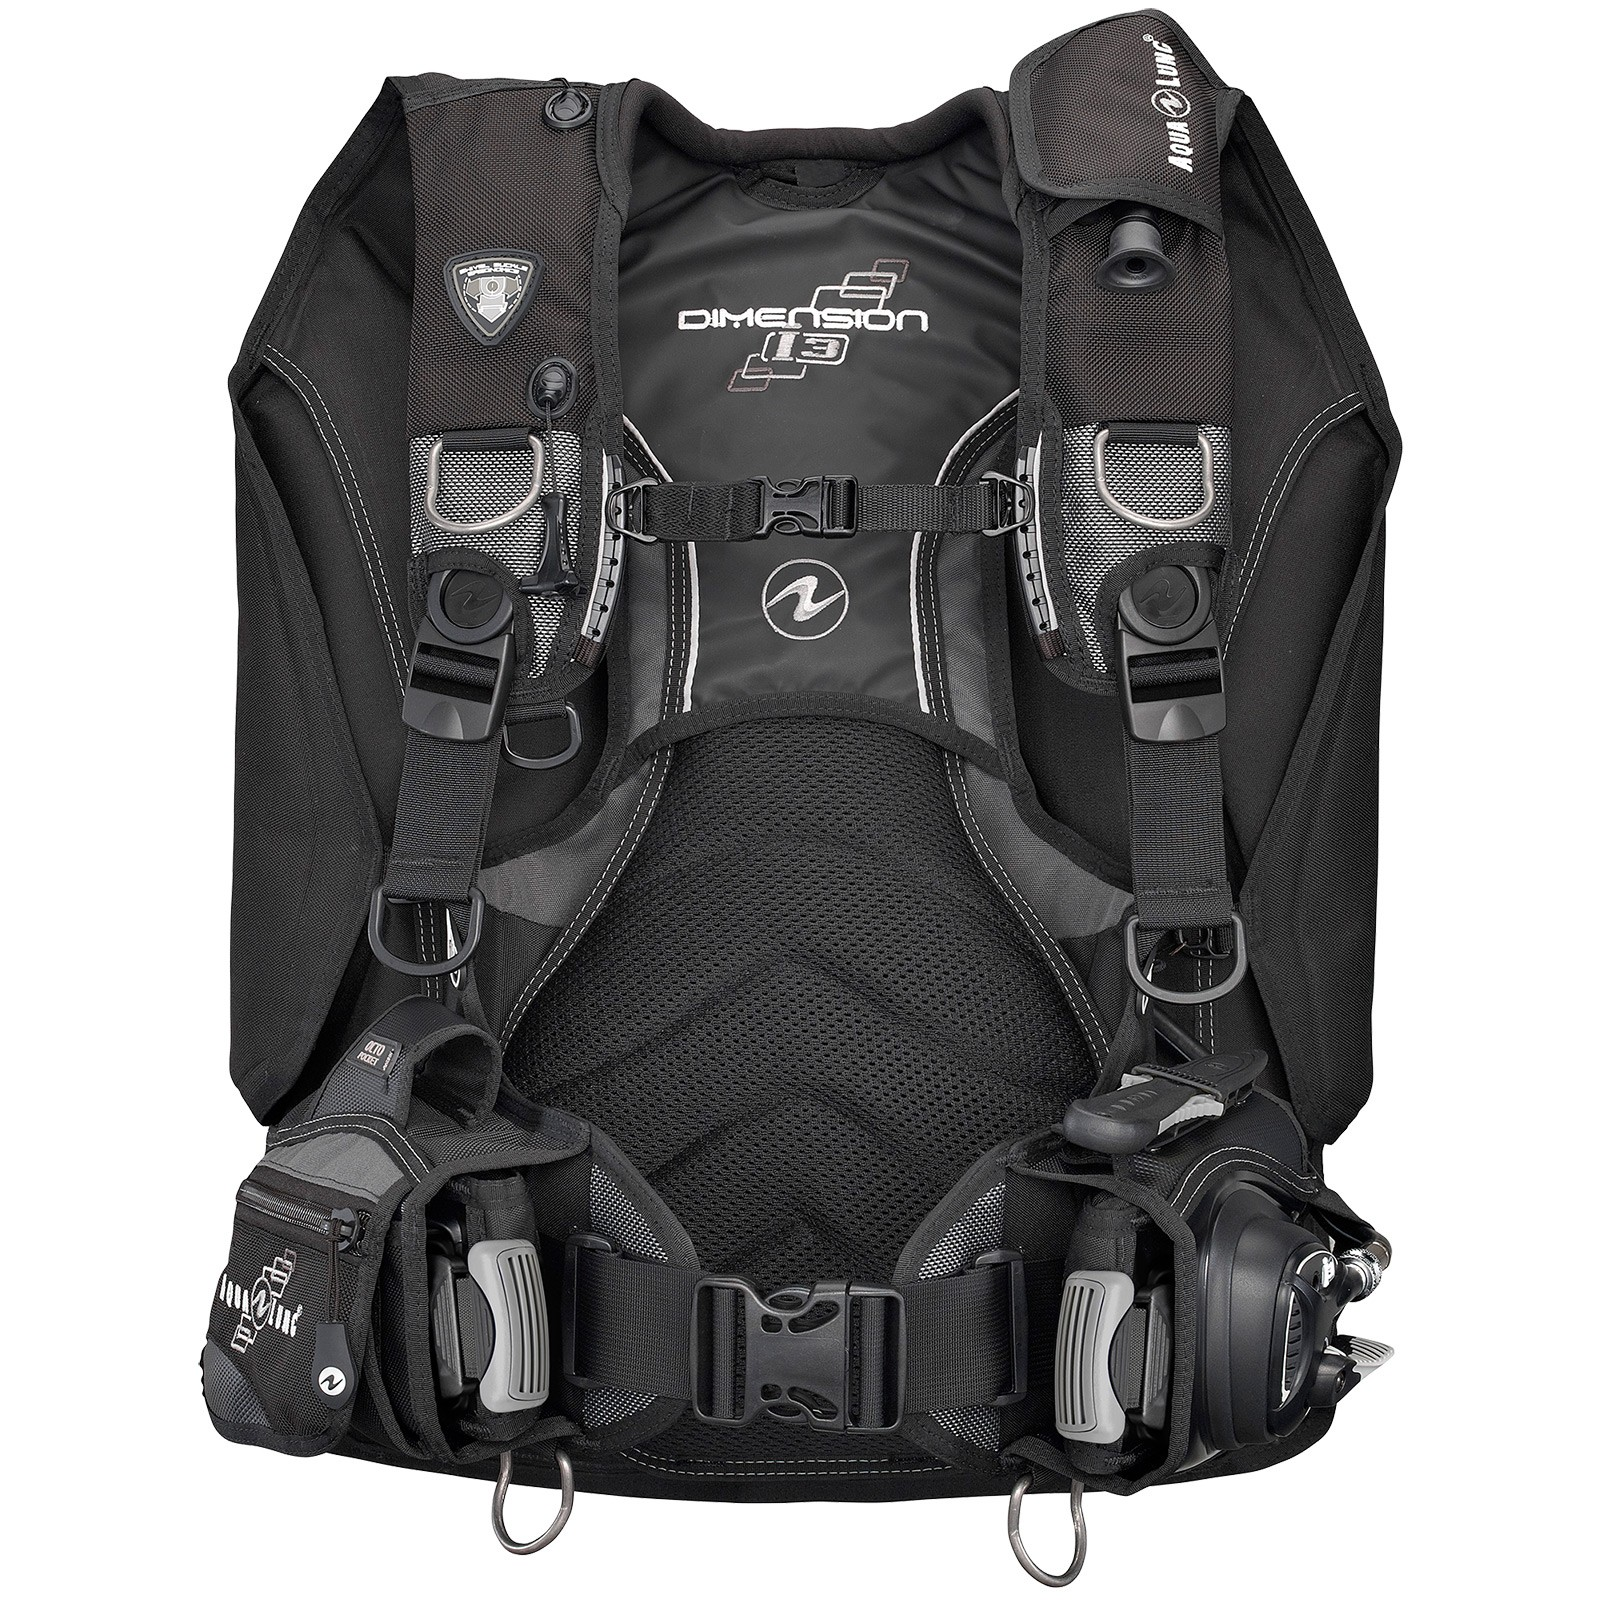 Aqua Lung Dimension i3 BCD - Front